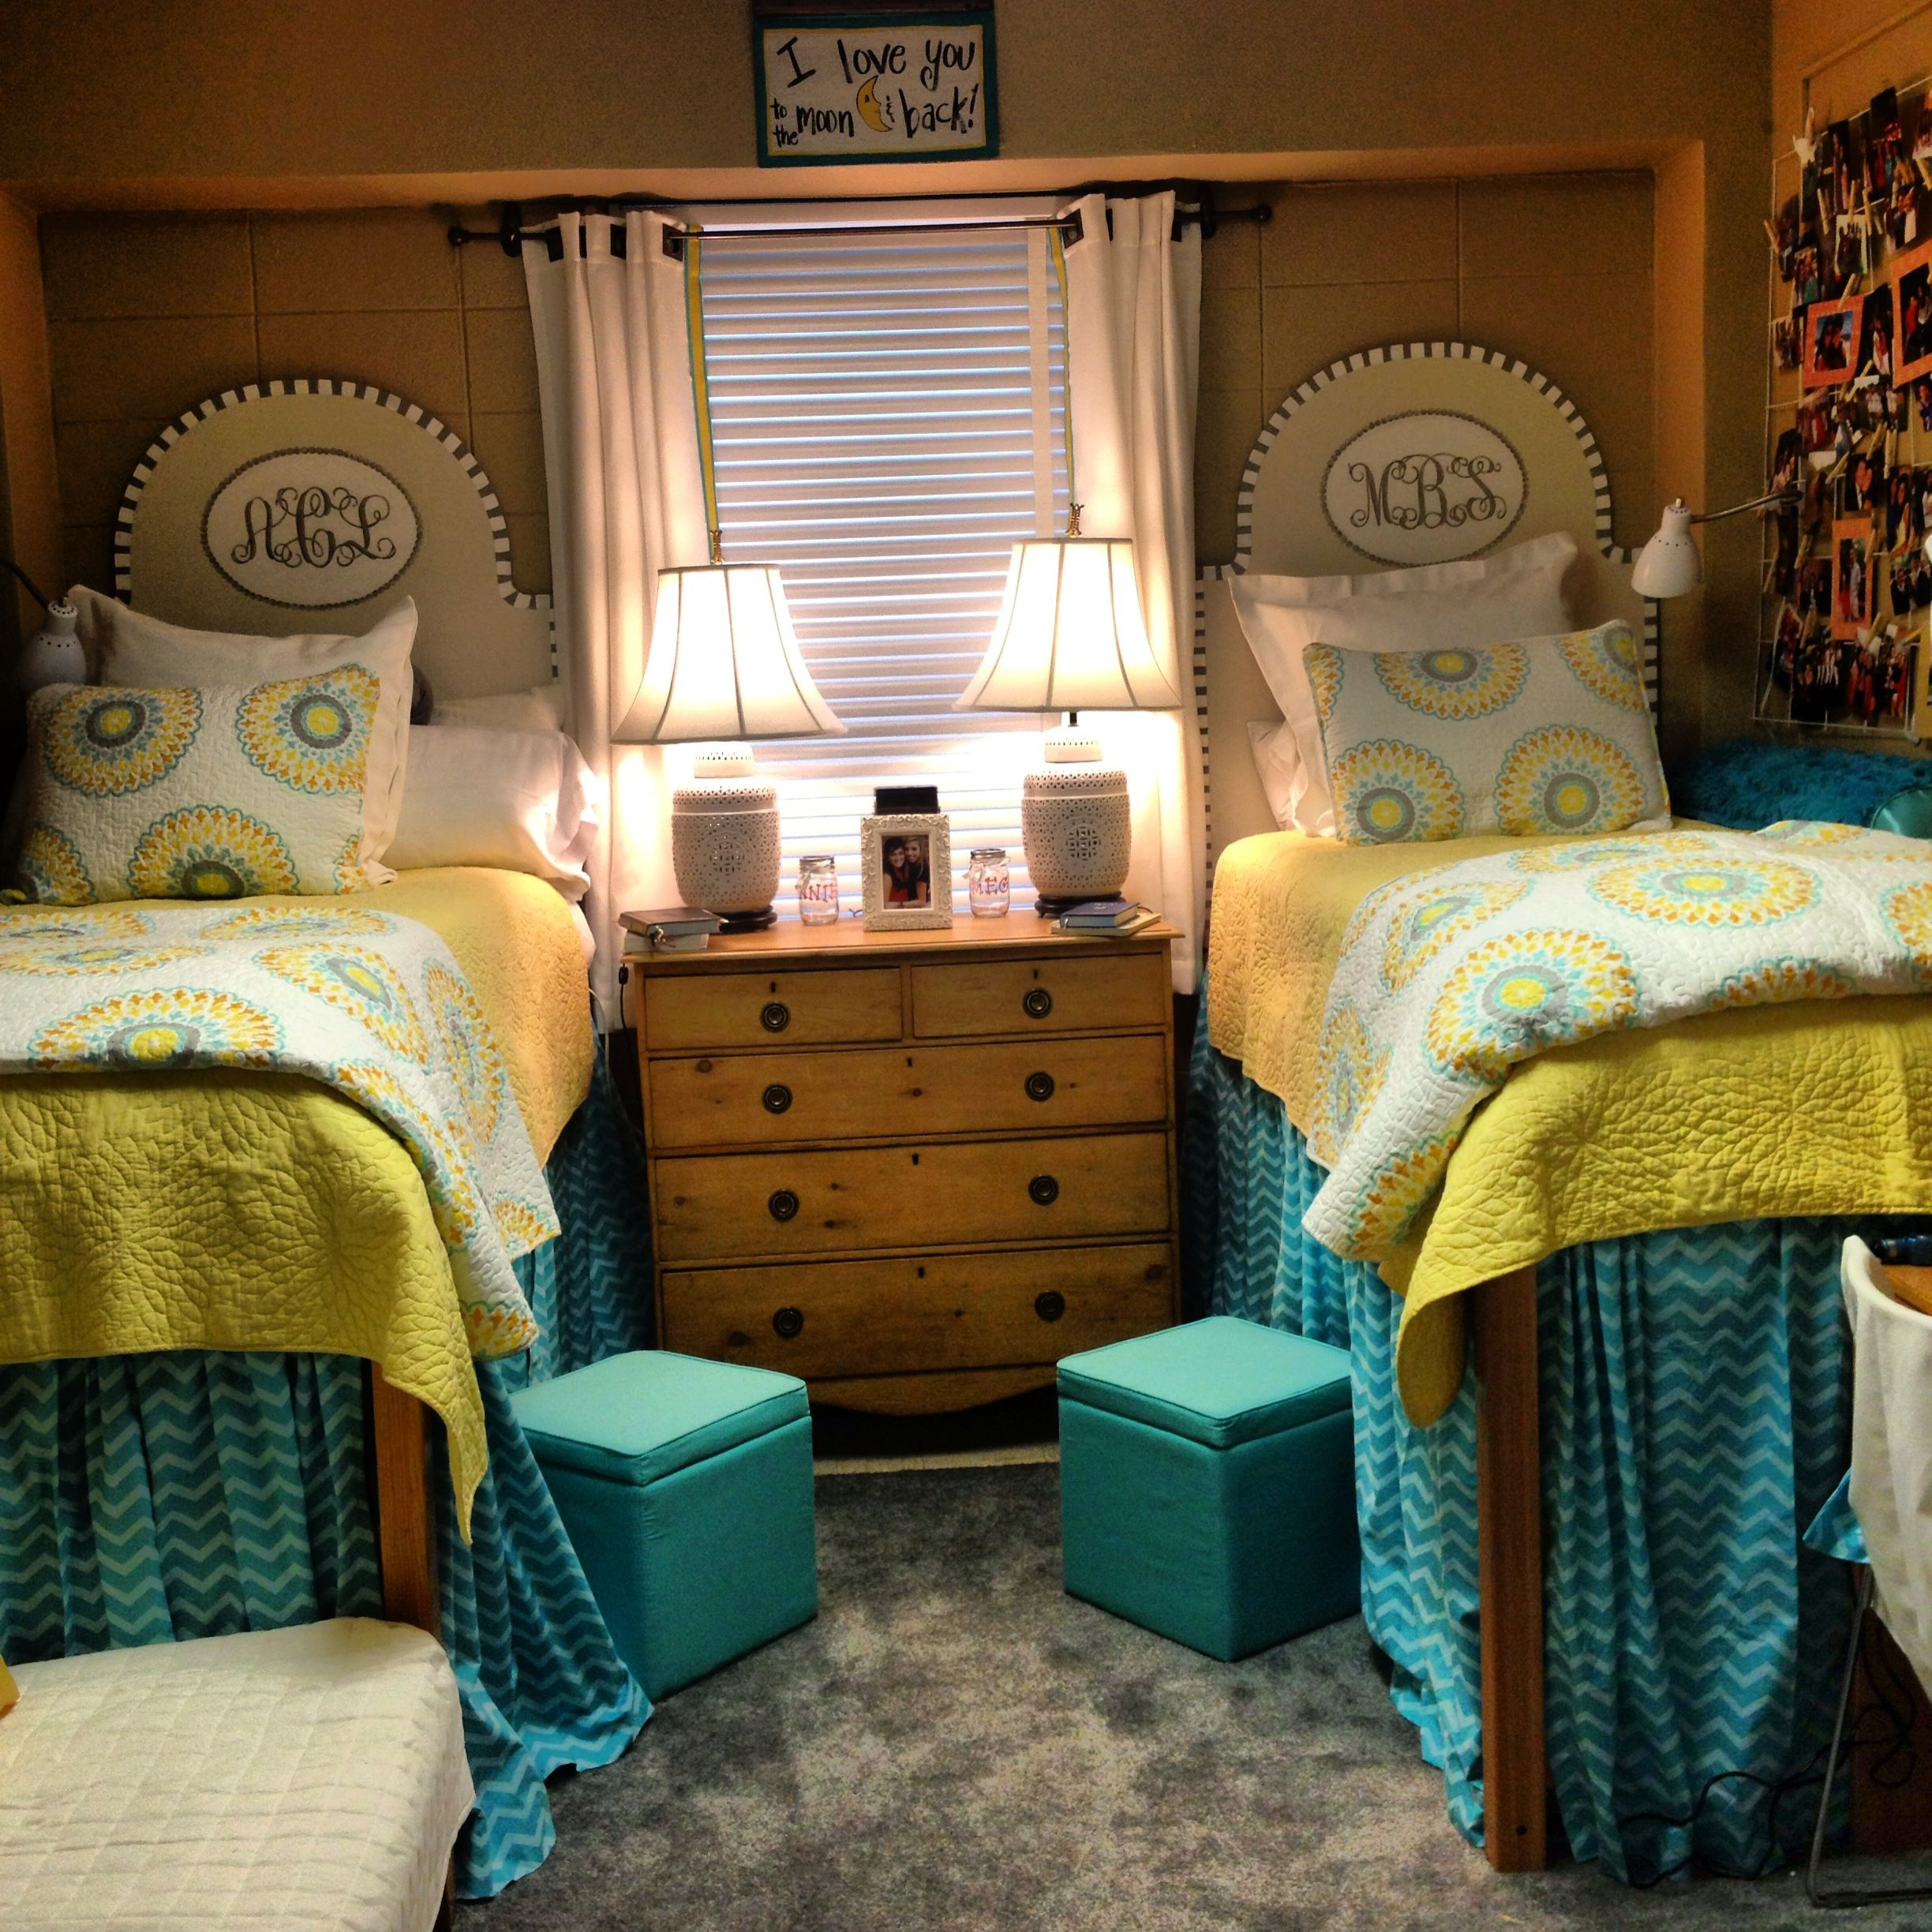 Getting Along With Your College Roommate | Pinterest | Dorm room ...